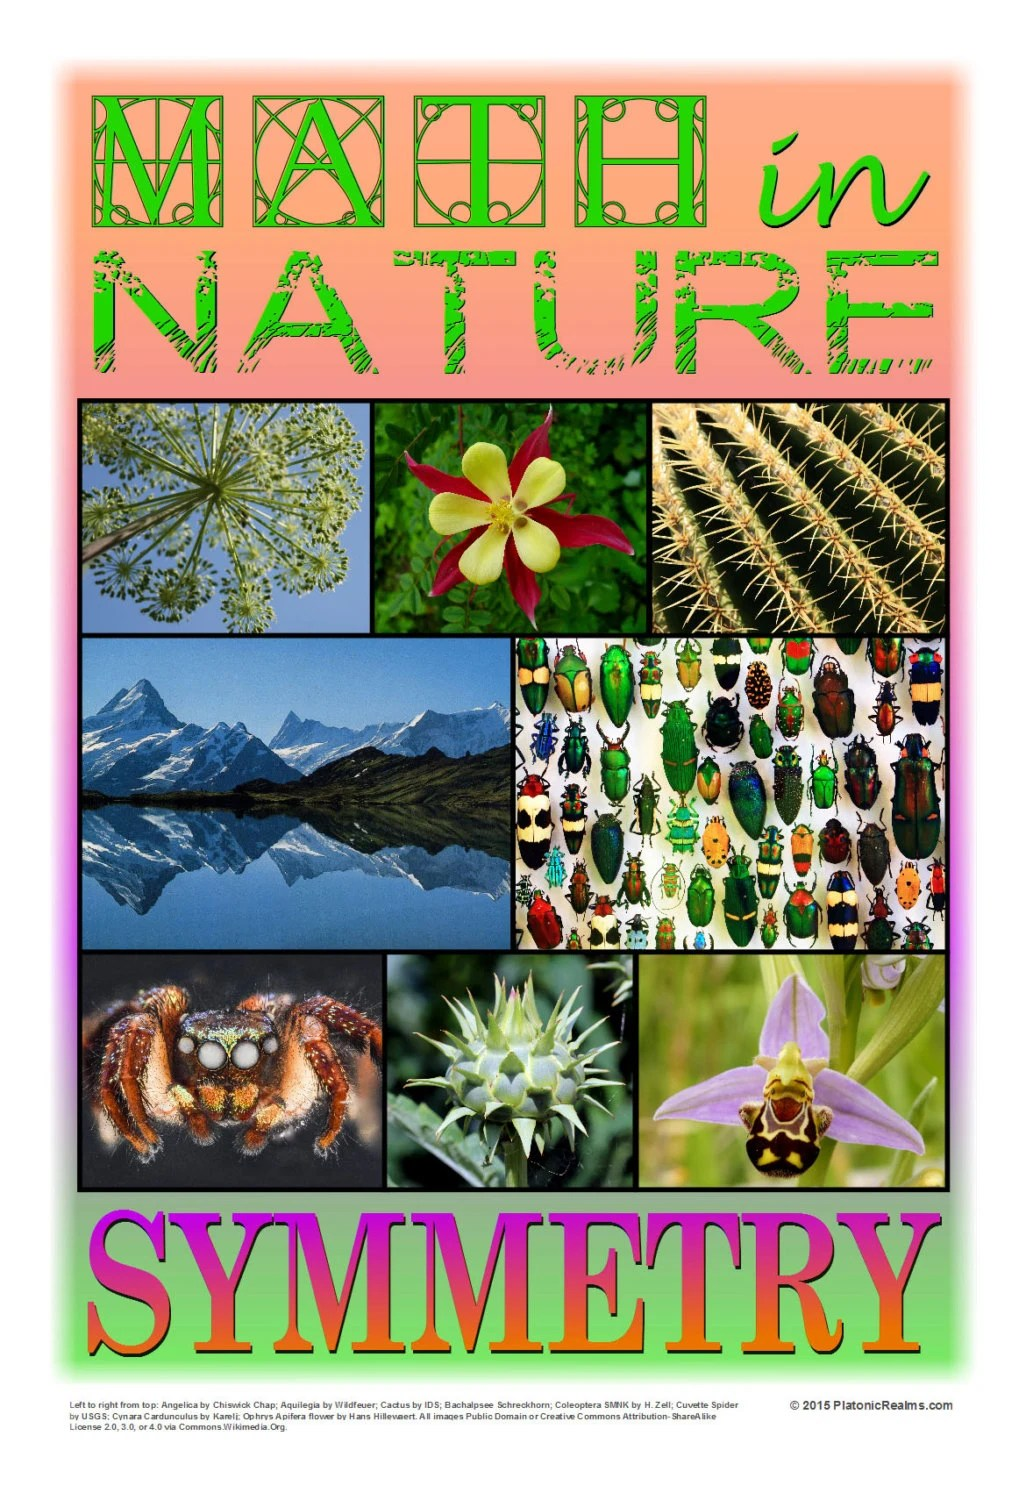 Math In Nature Symmetry By Platonicrealms On Etsy